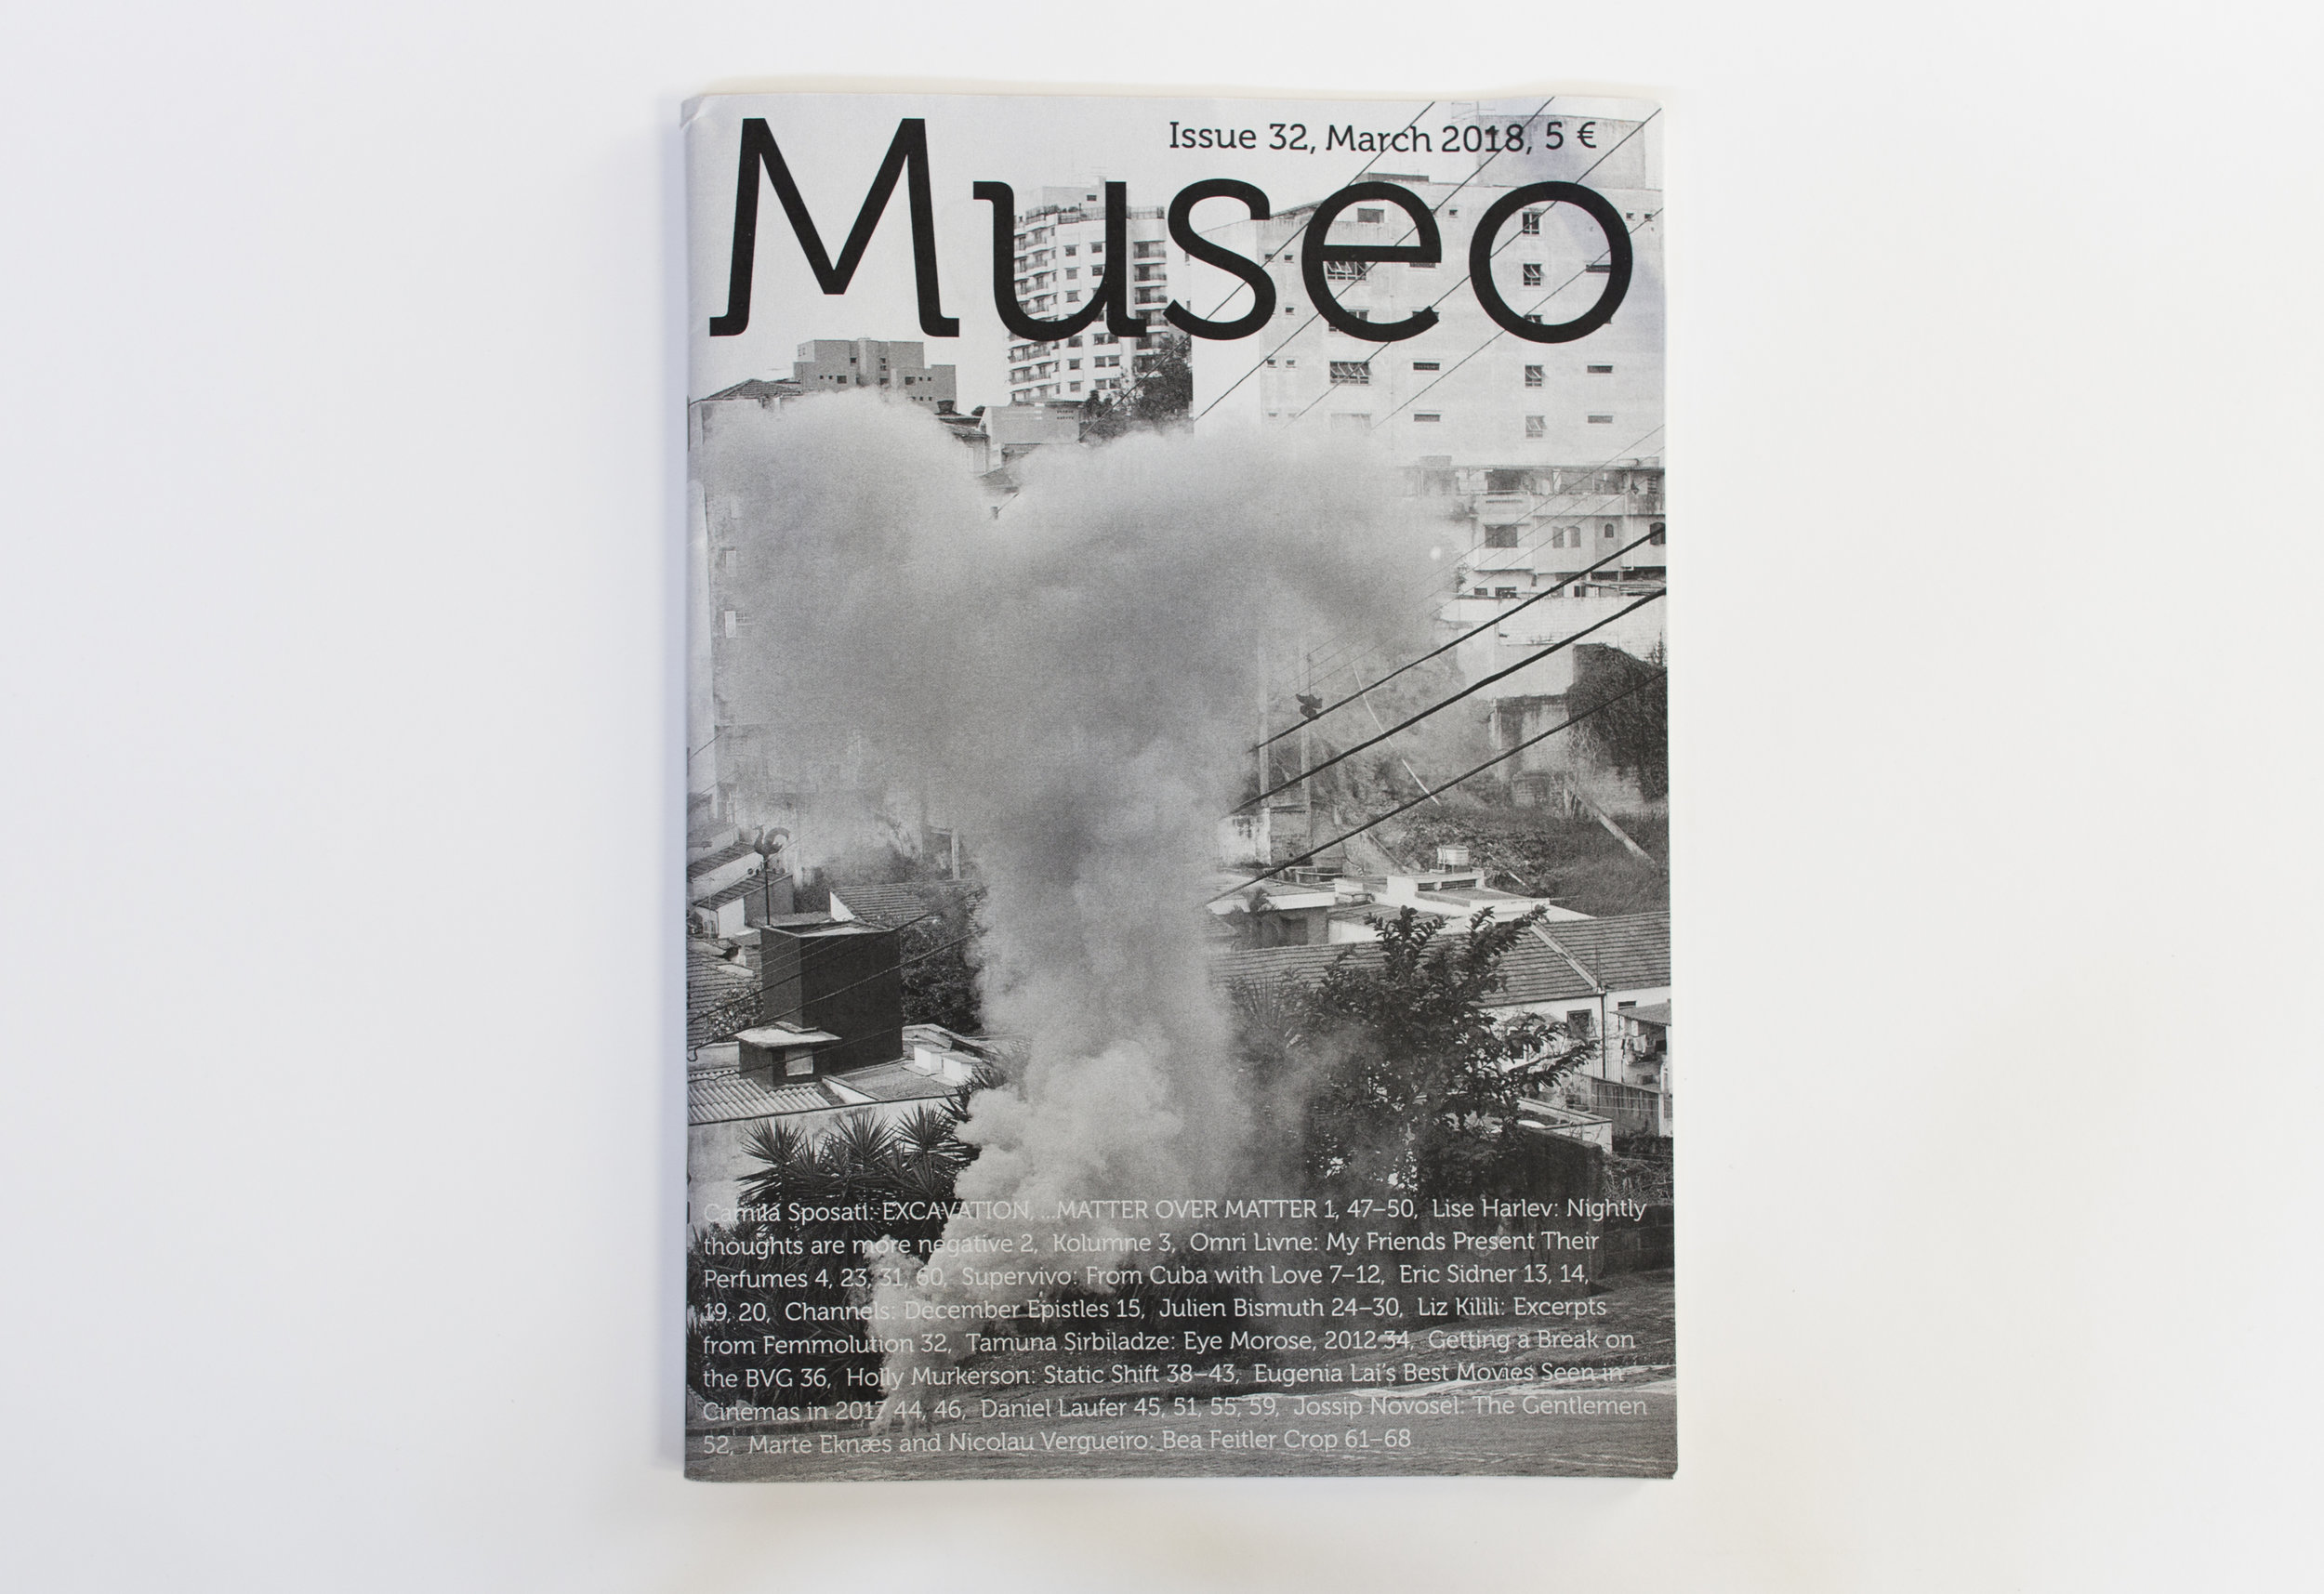 museo_cover.jpg